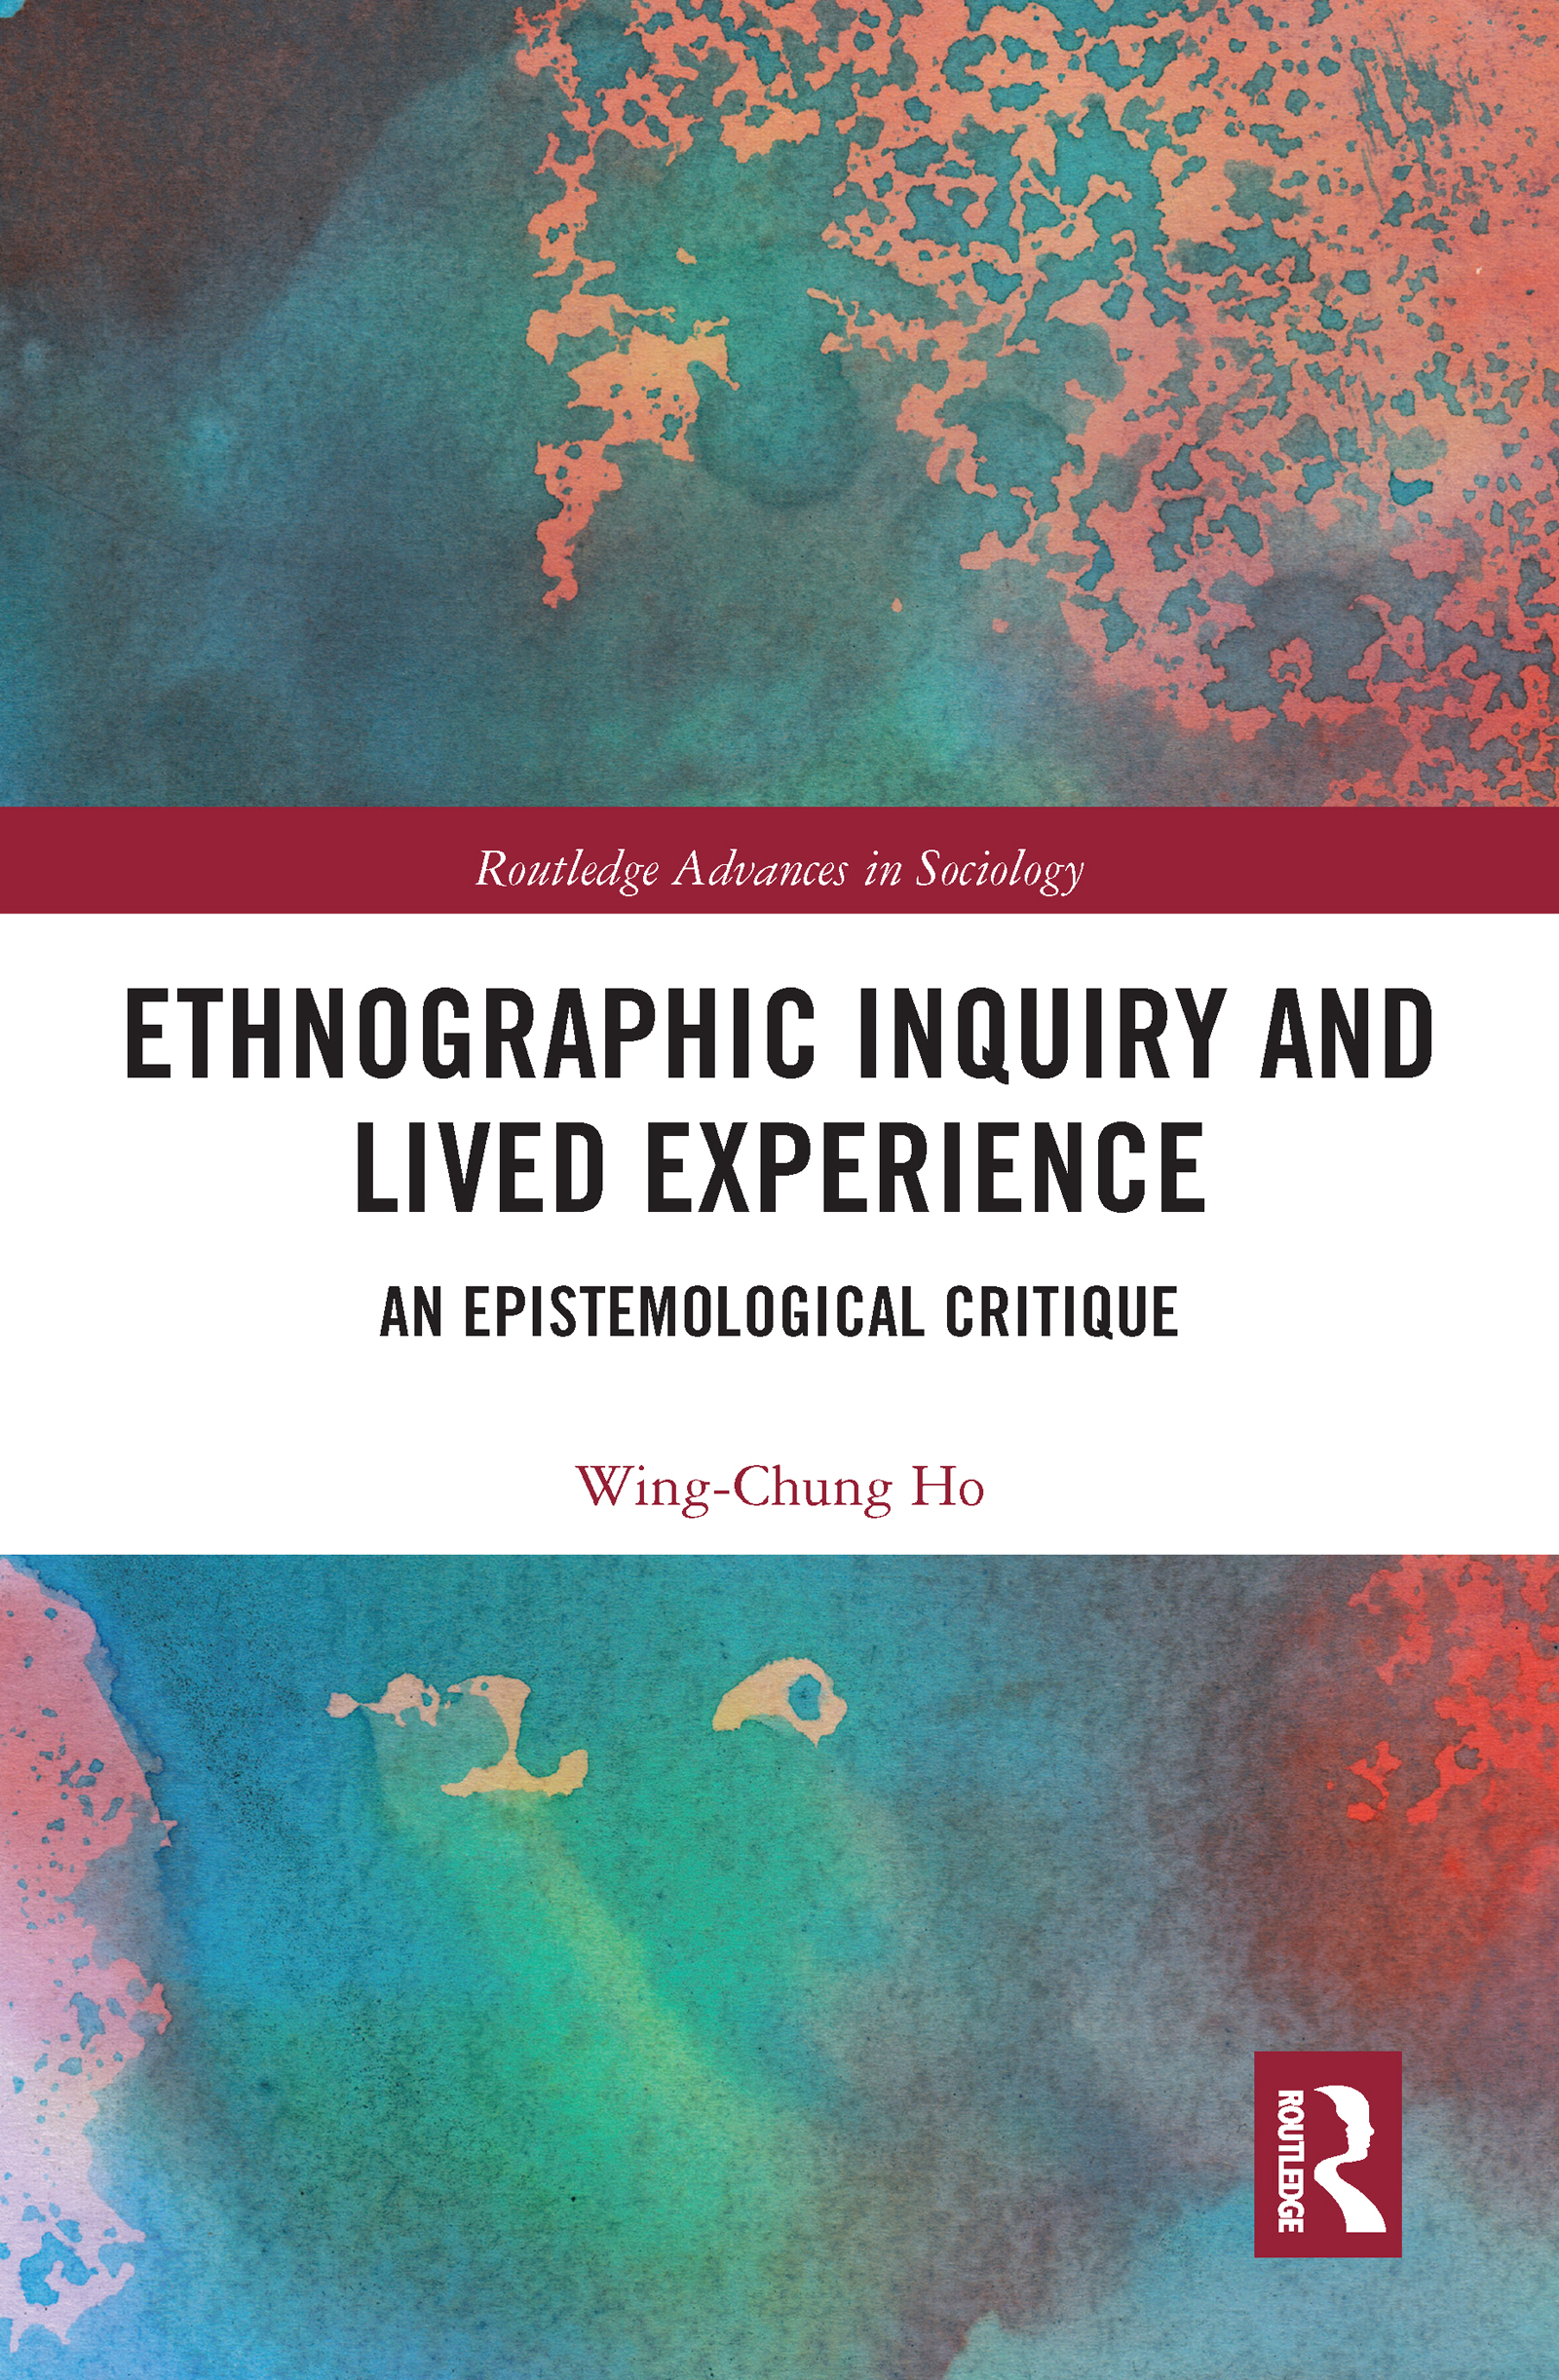 Ethnographic Inquiry and Lived Experience